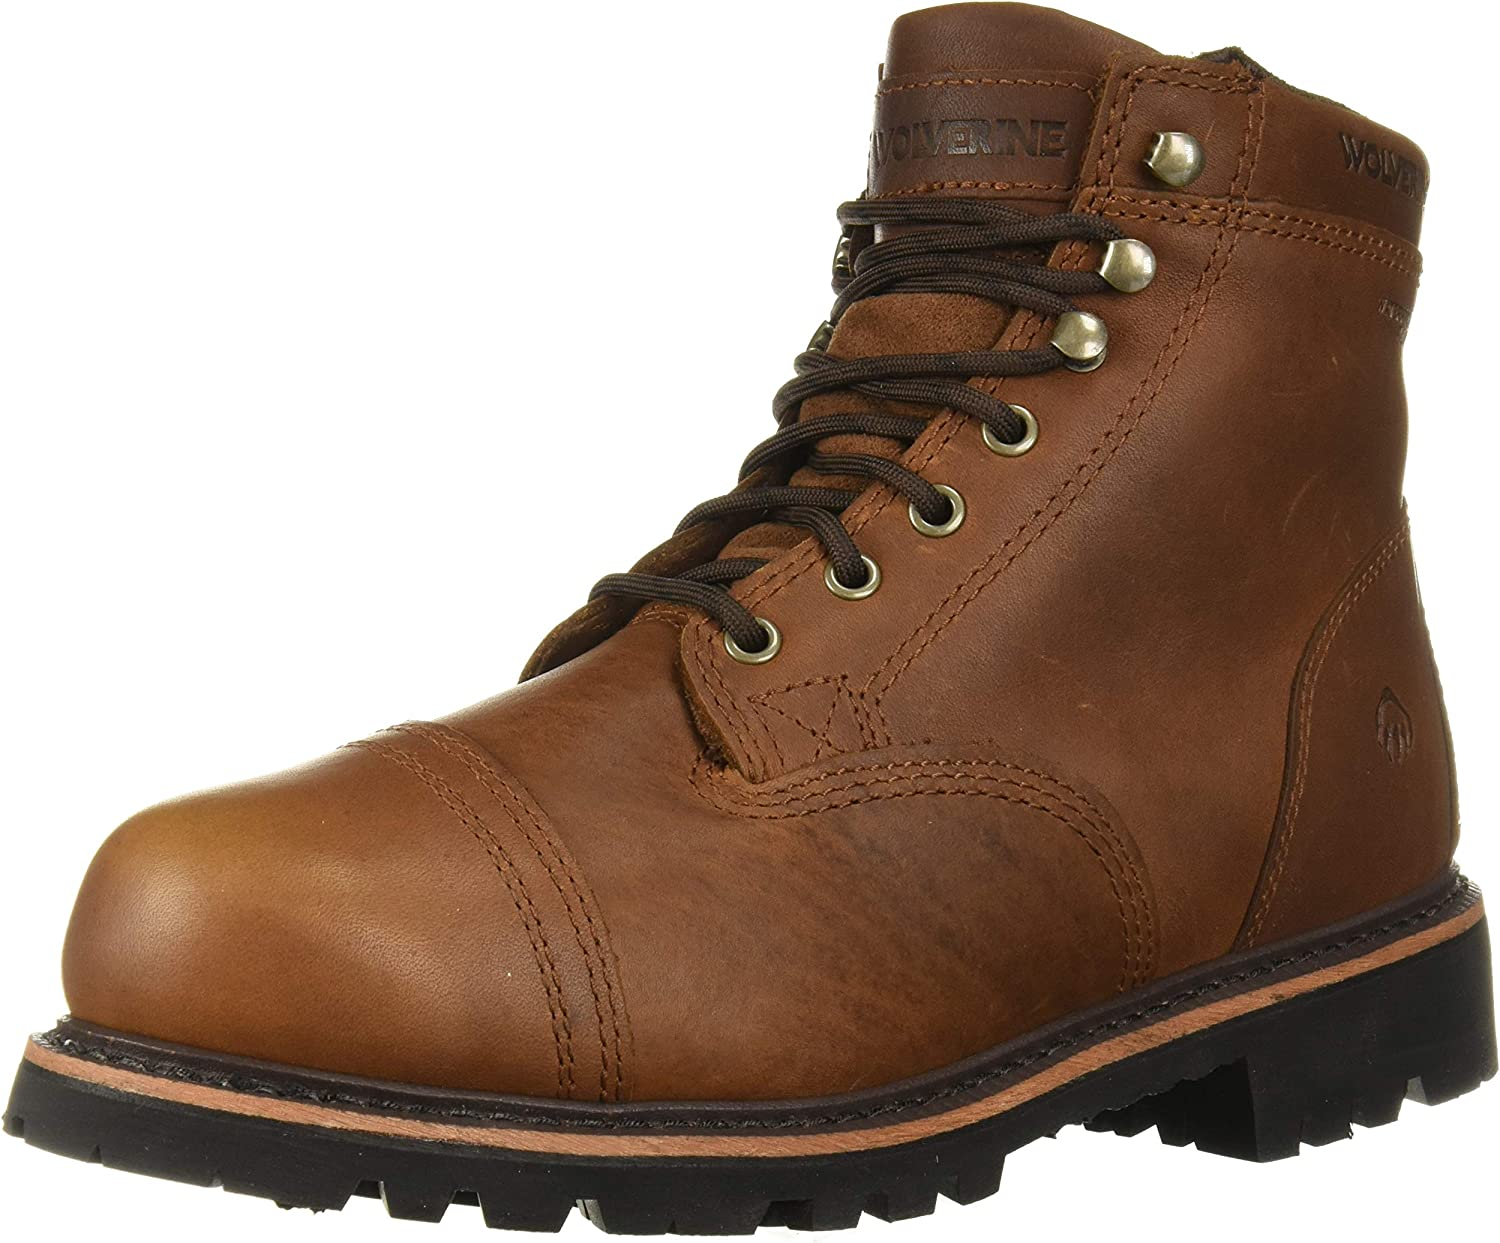 WOLVERINE Men's Direct store 6